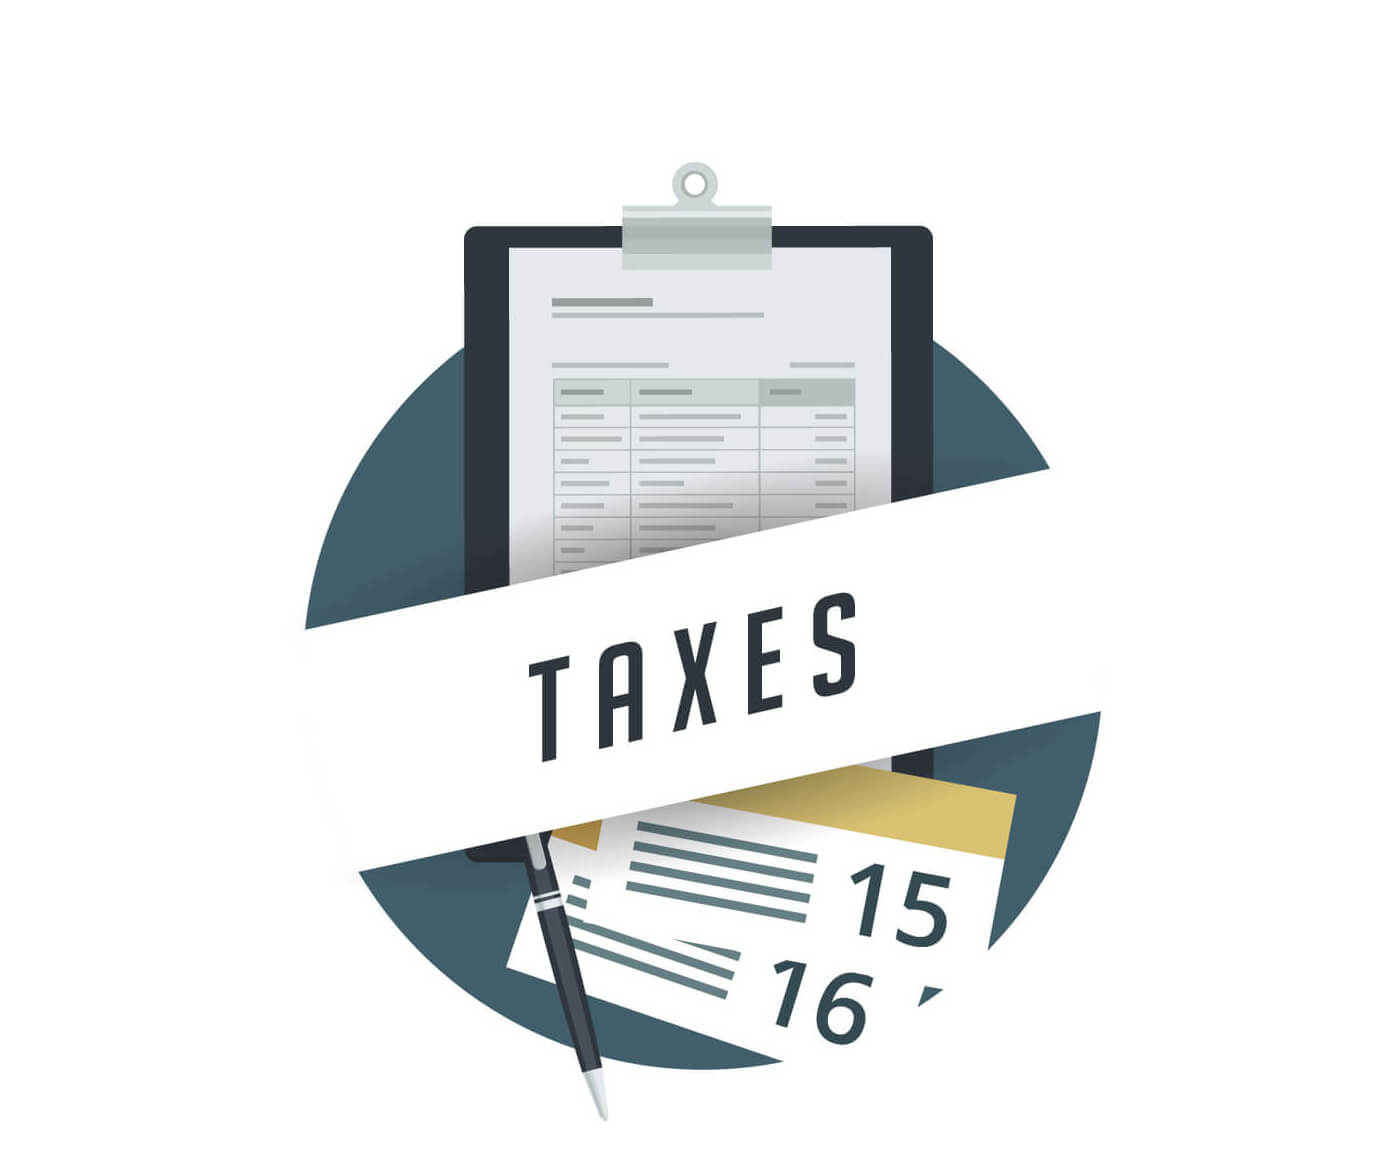 Taxes - As an accounting firm, of course we do taxes! But Honest Buck takes it one step further. We know the value of proper tax planning and the impact of keeping a few thousand more dollars in your pocket.